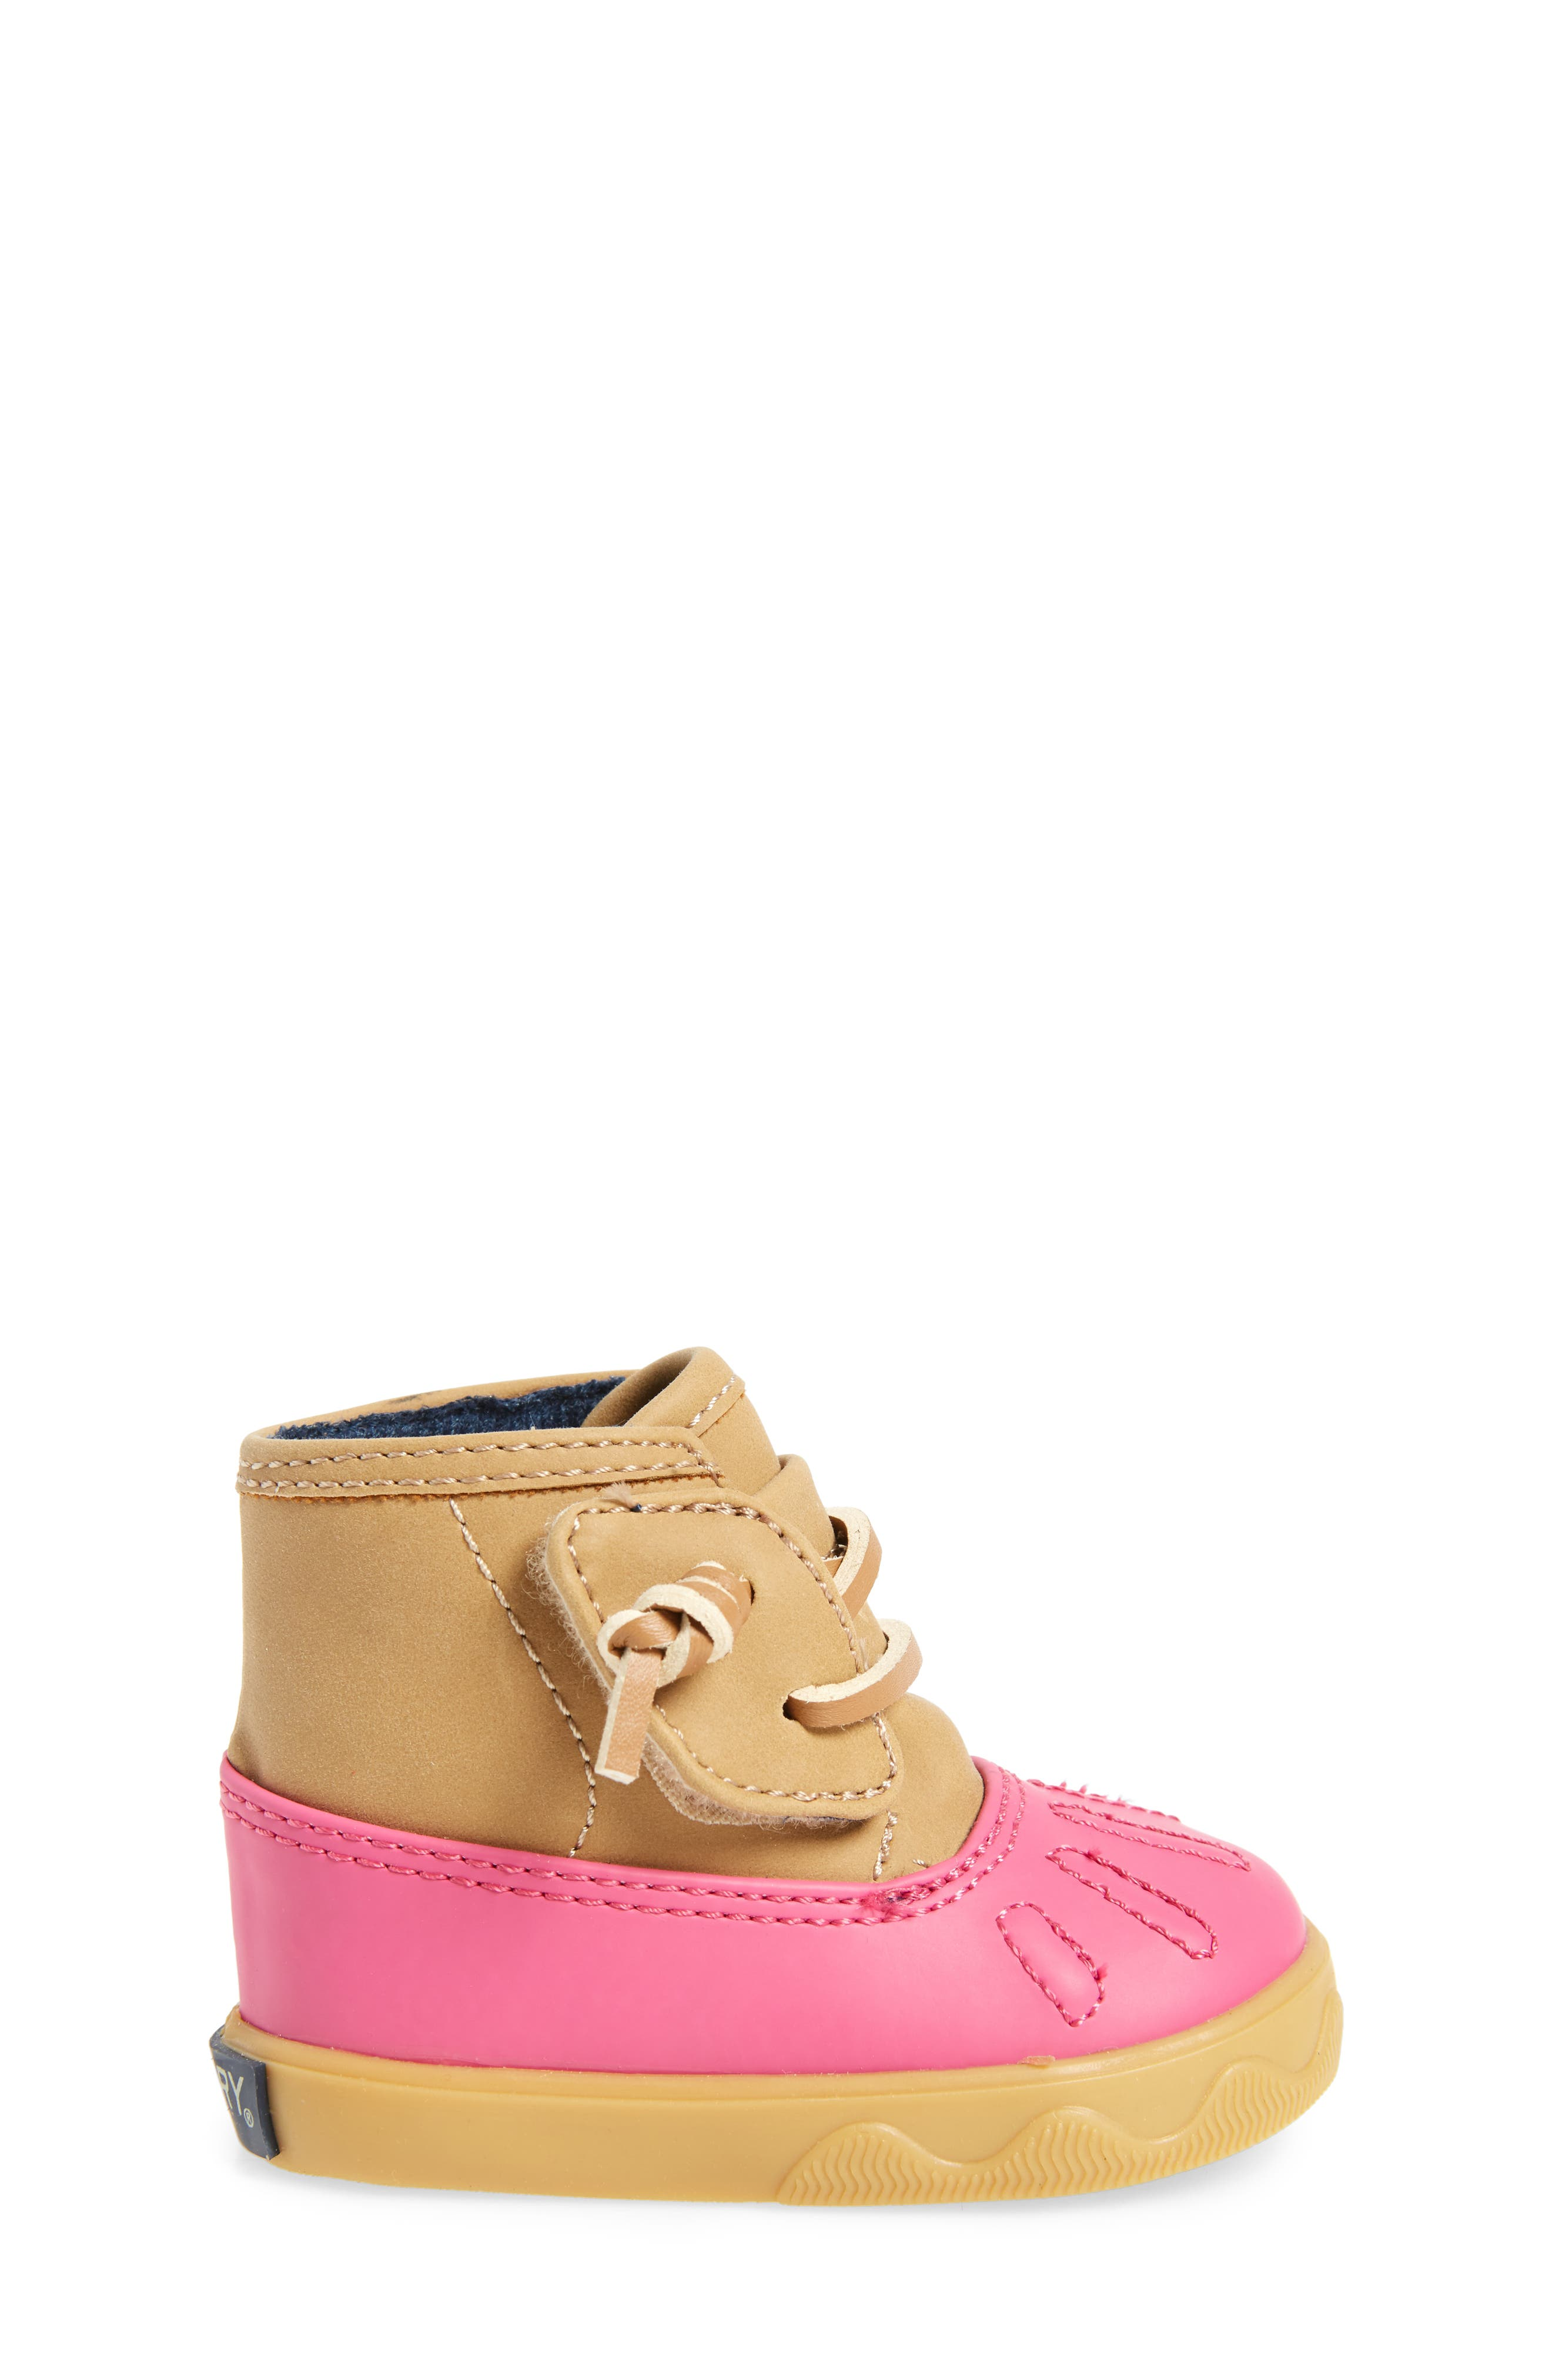 Sperry Icestorm Crib Duck Bootie,                             Alternate thumbnail 3, color,                             650